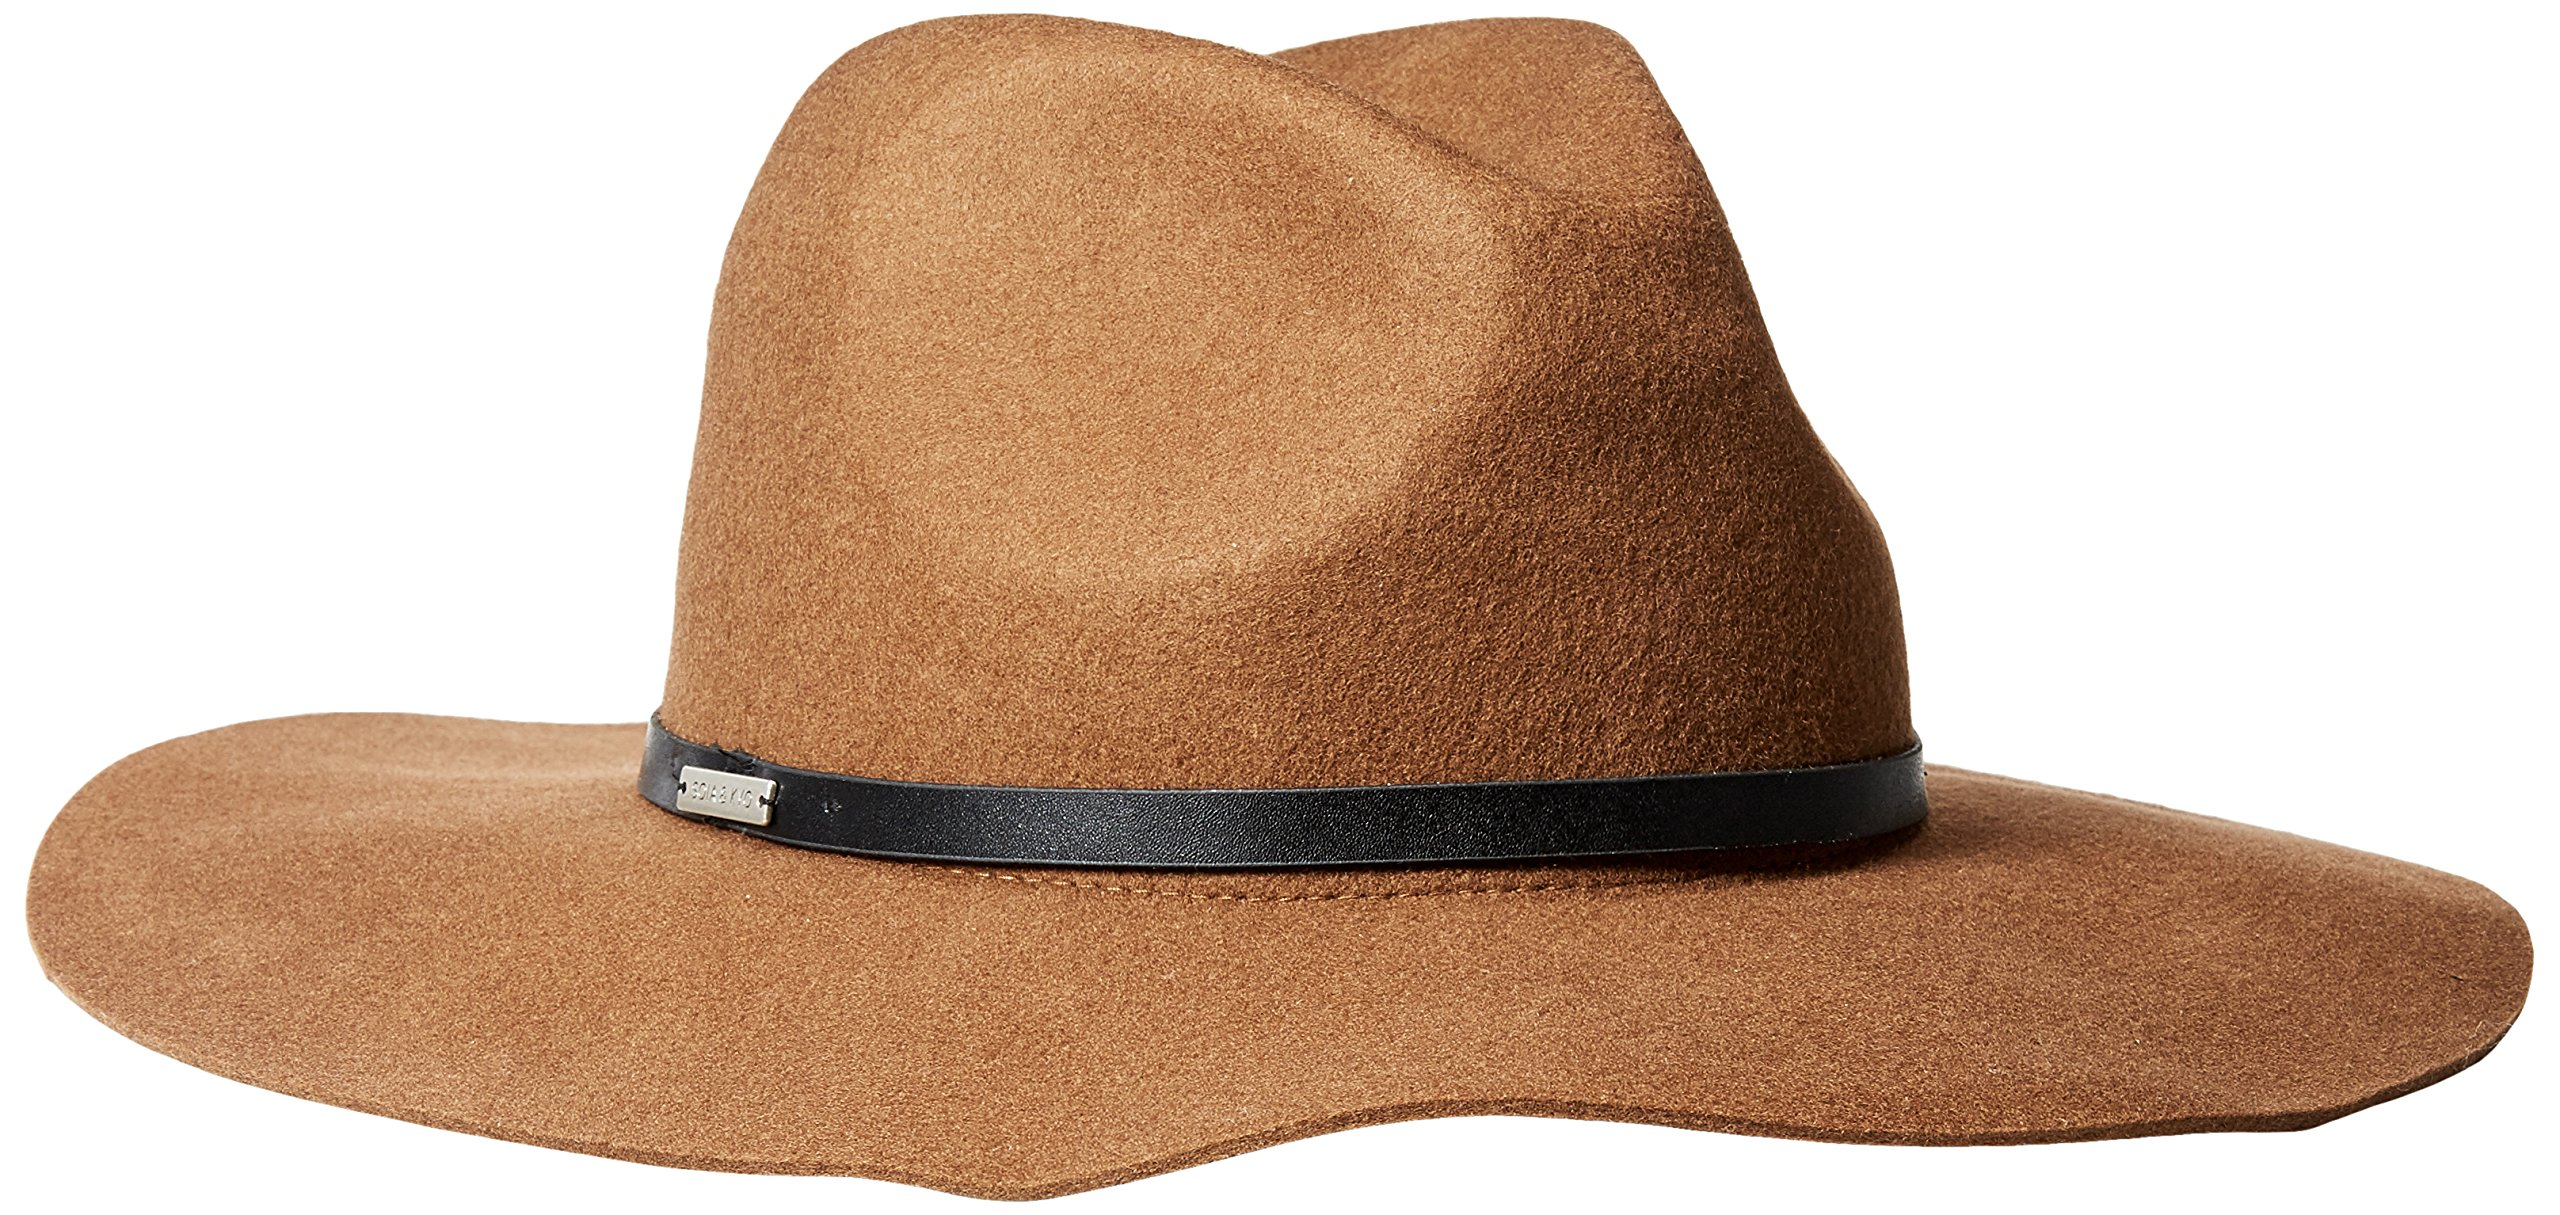 Soia & Kyo Women's Franca Felt Fedora With Leather Trim, Russet, Medium/Large by Soia & Kyo